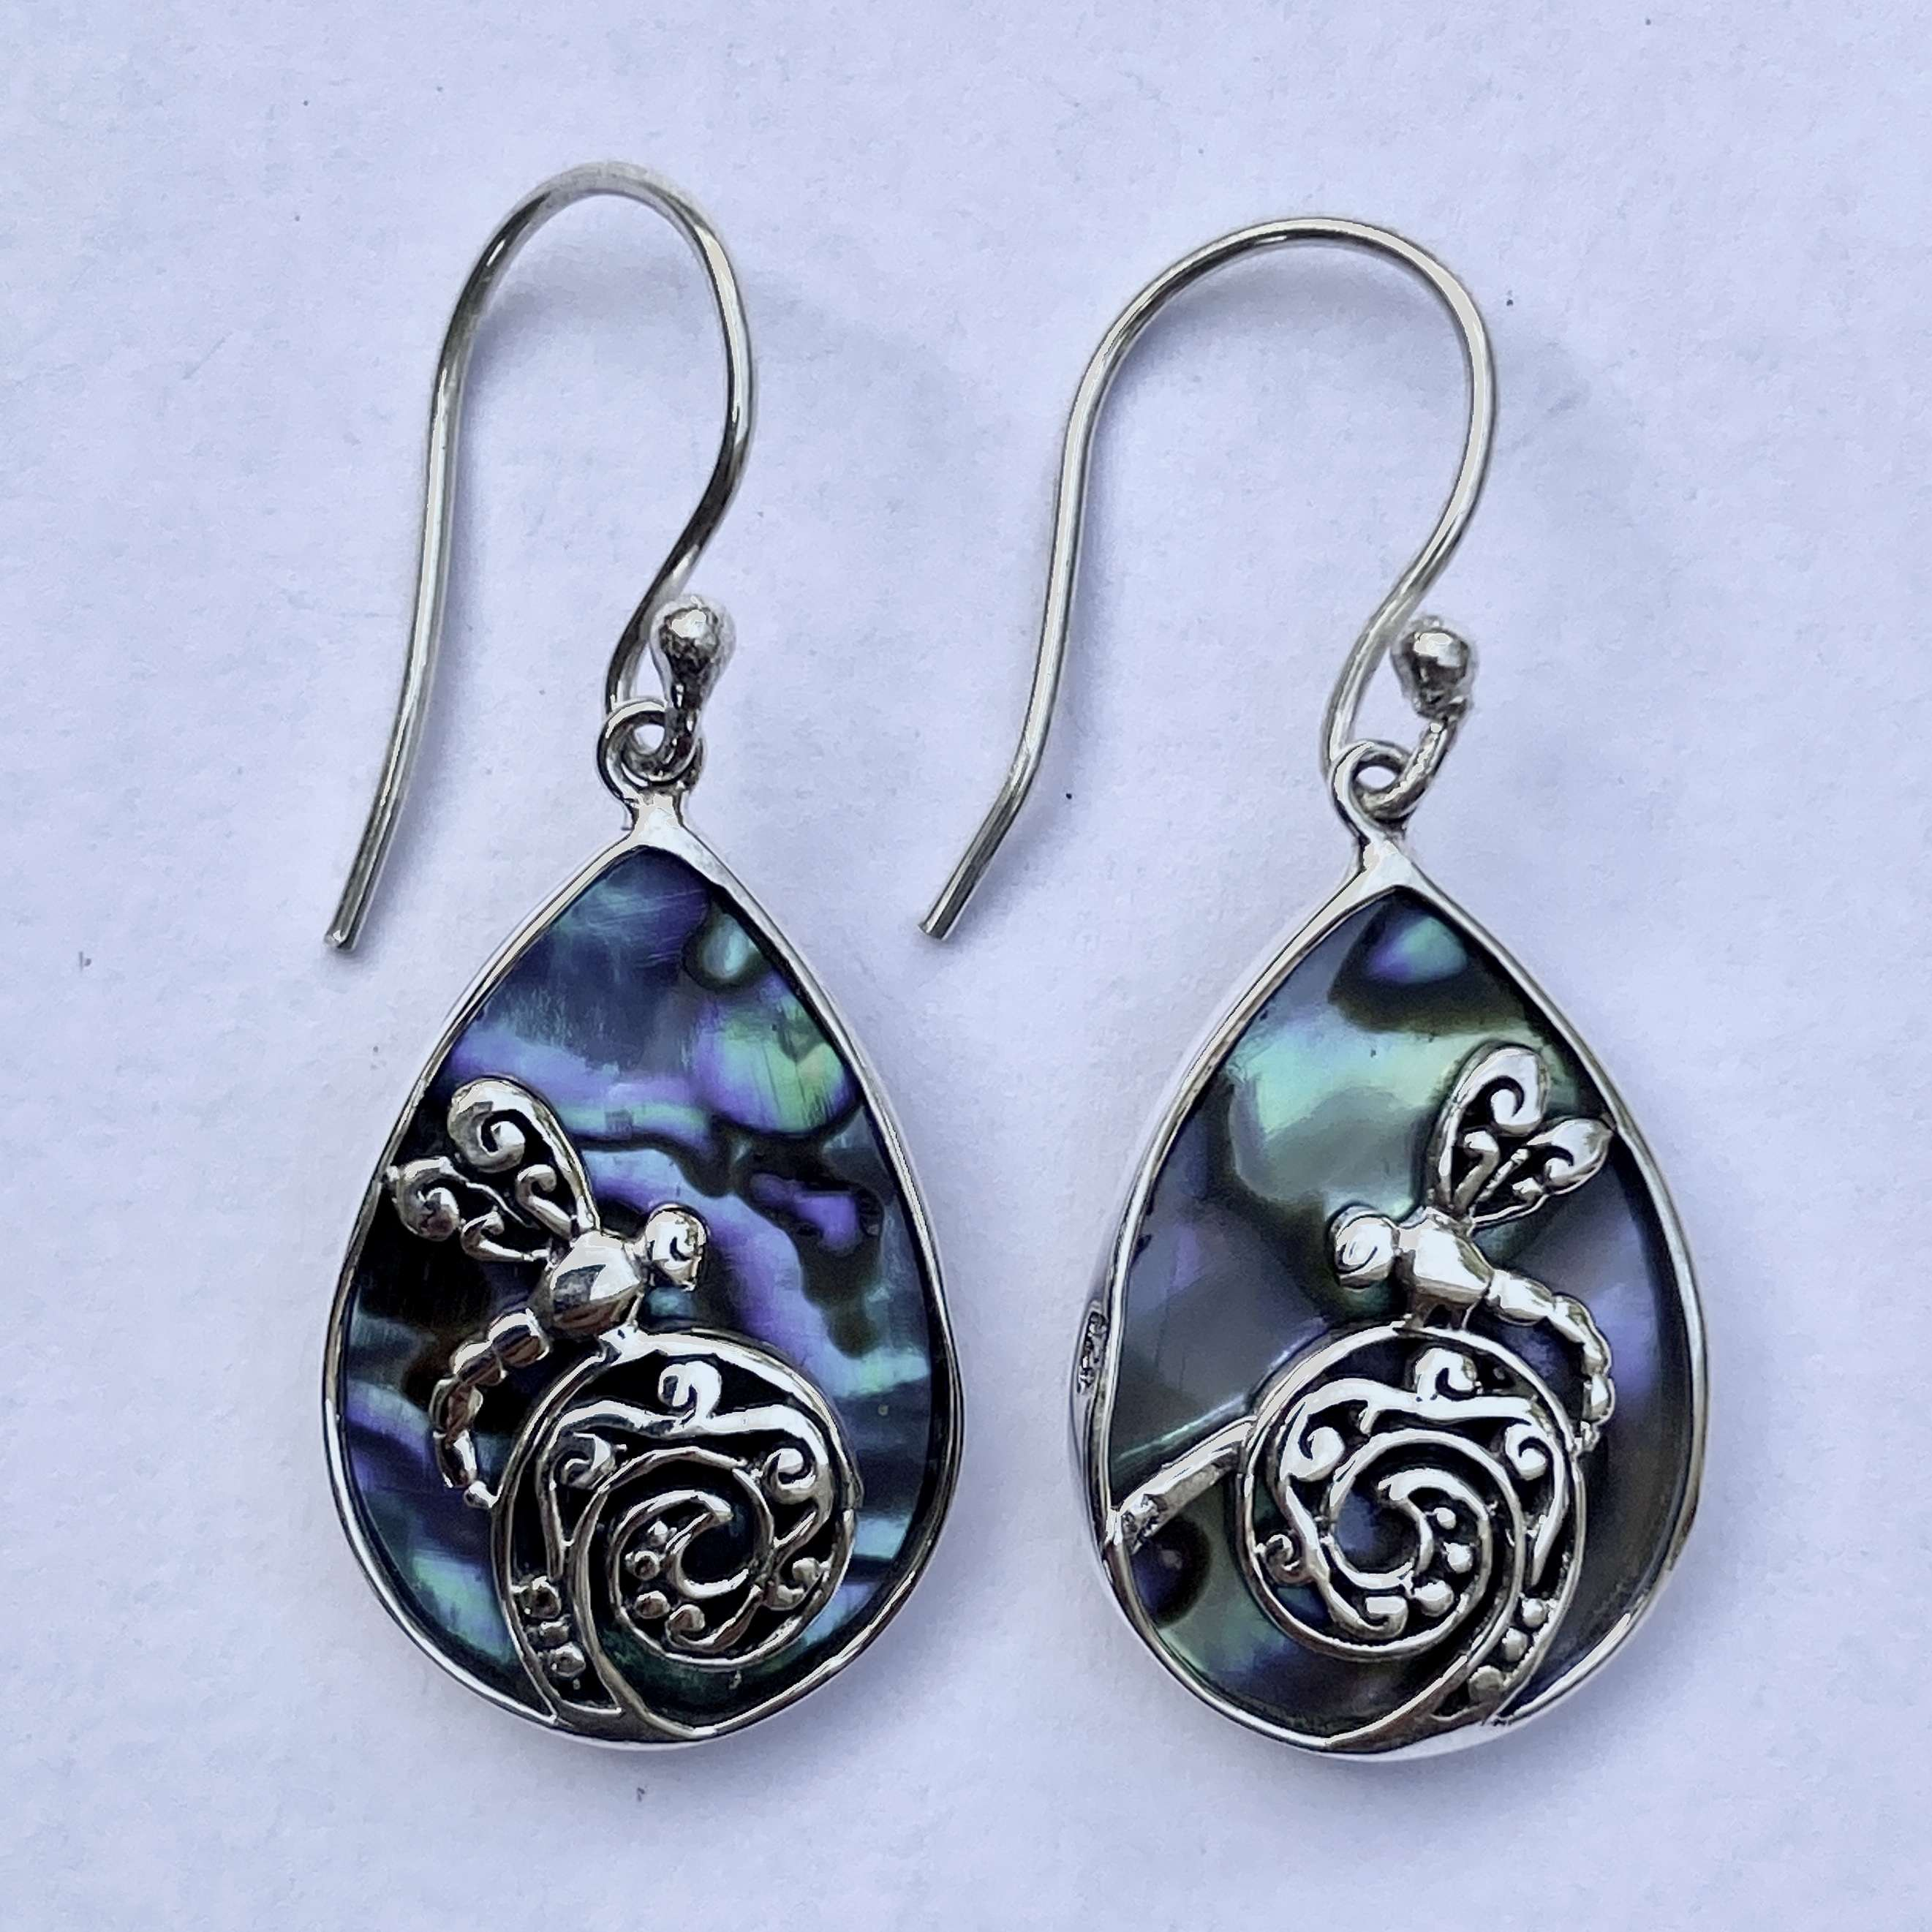 (HANDMADE 925 BALI SILVER DRAGONFLY EARRINGS WITH ABALONE)